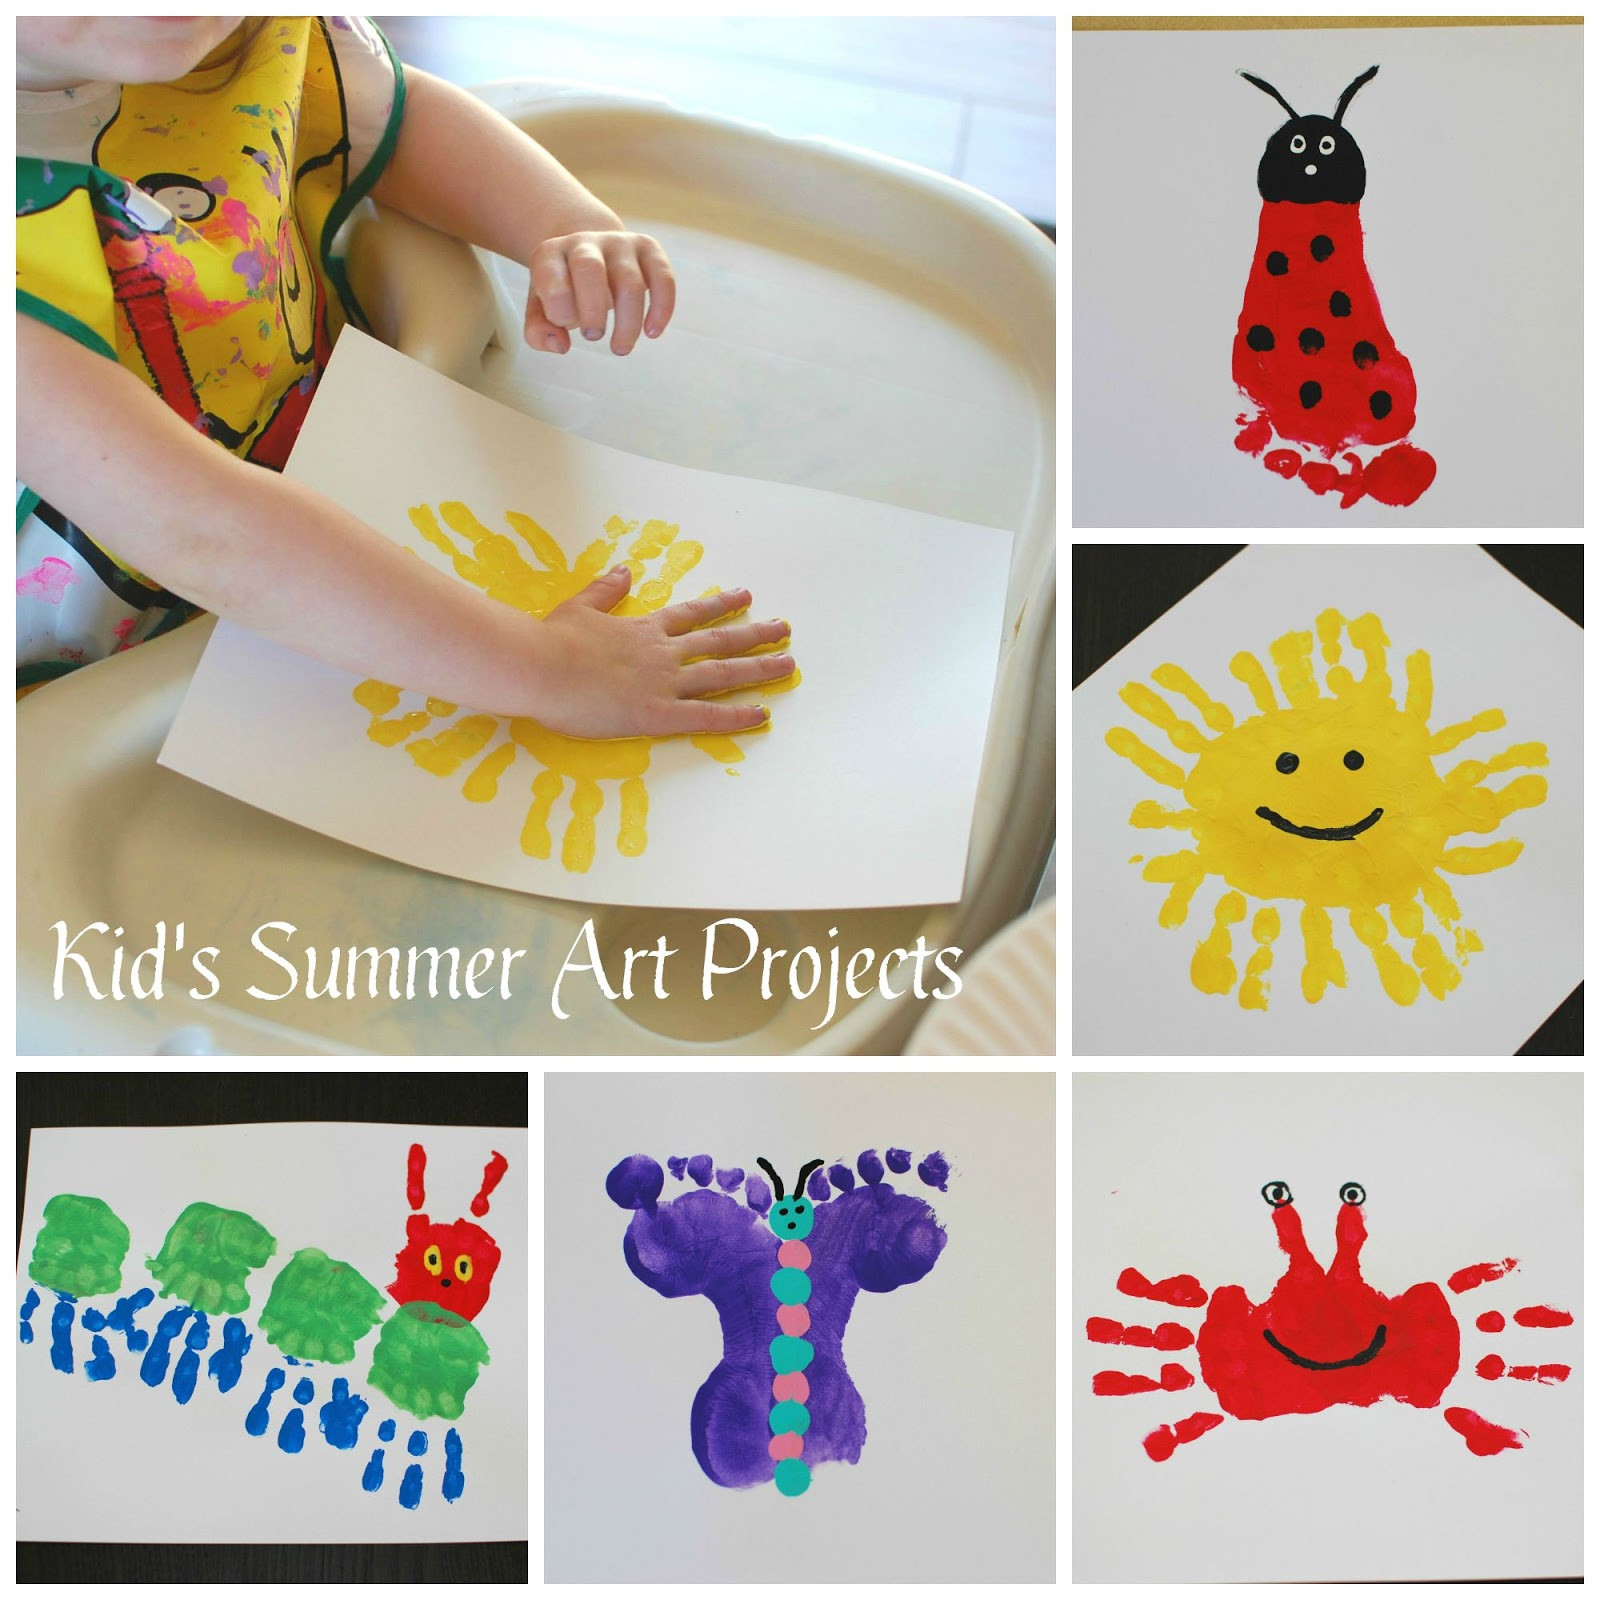 Best ideas about Summer Art Project For Kids . Save or Pin Pinkie for Pink Kid s Summer Art Projects Now.